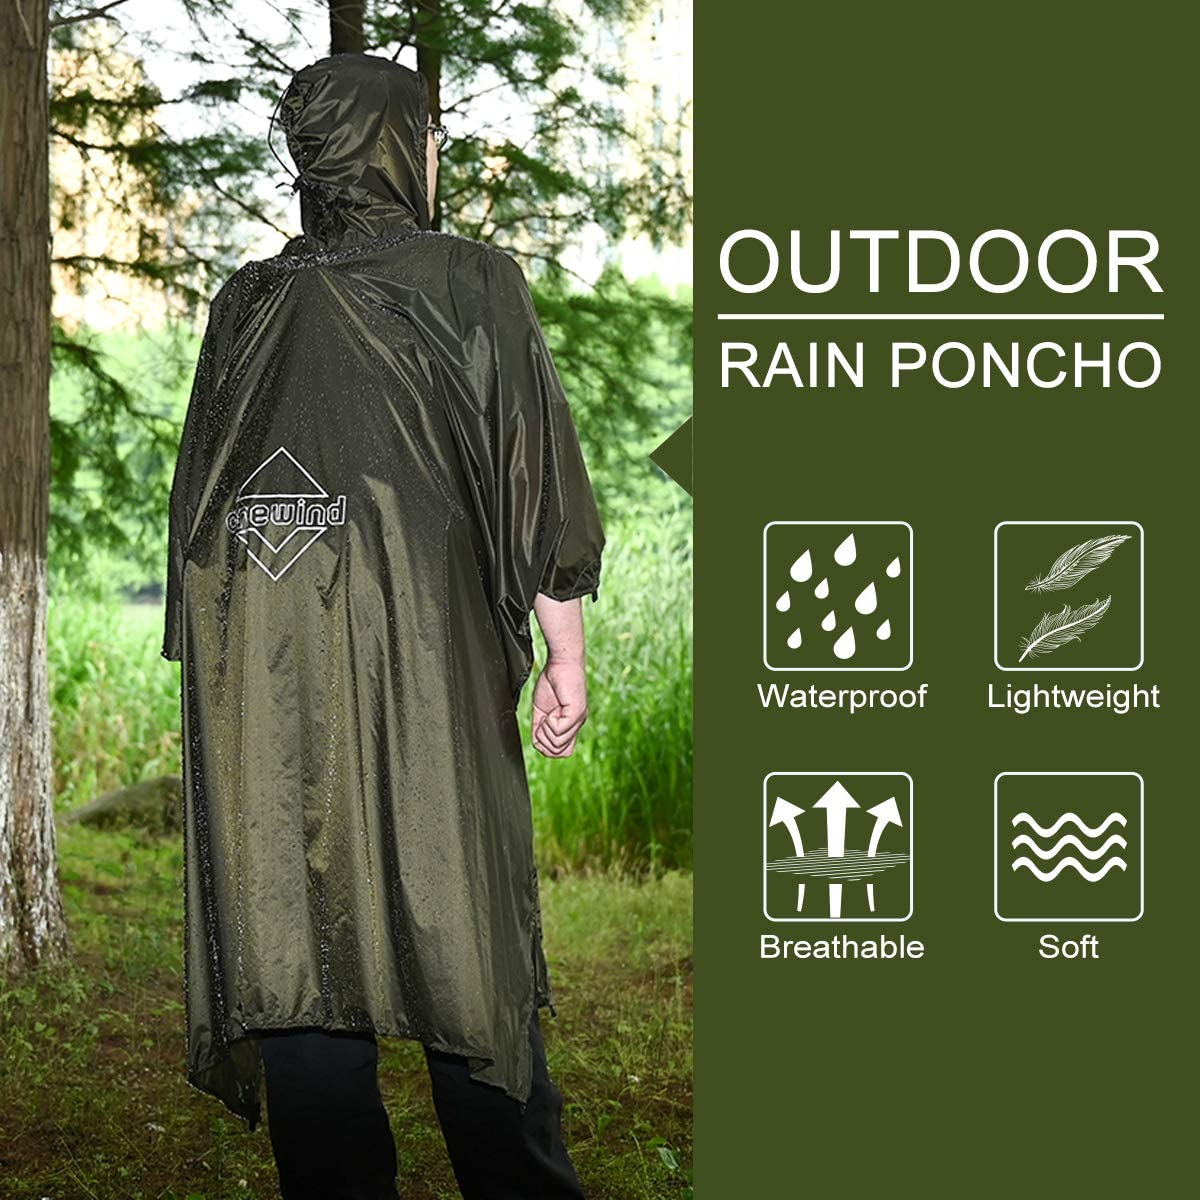 Ideal for Camping Backpacking Hiking onewind Hood Rain Poncho Ultralight Silnylon Rain Cover Multi Use Raincoat Men//Women Hunting